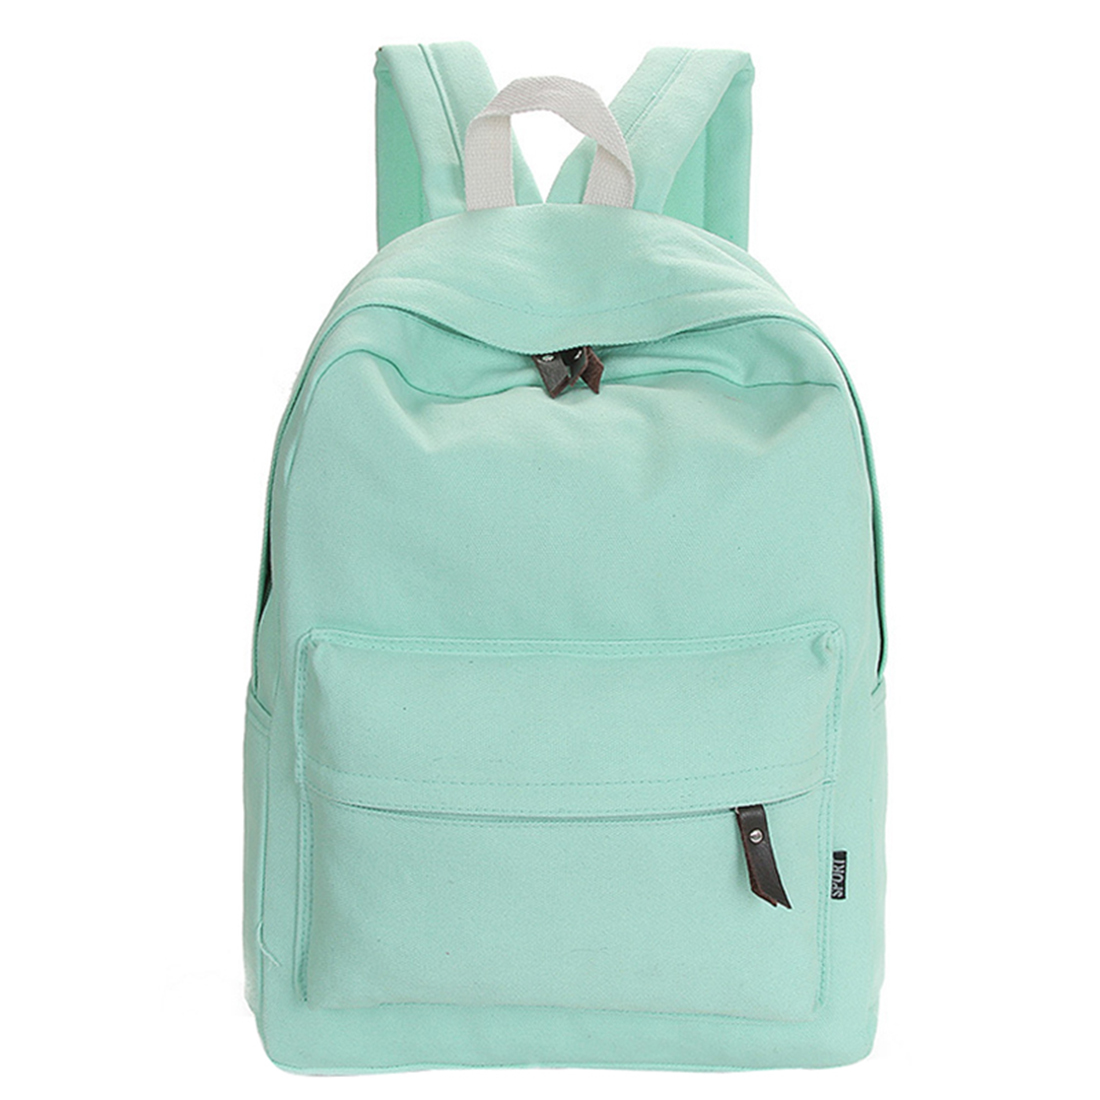 Fresh Pure Colors Casual Canvas Backpack Fashion School Bag For Girls And Boys Unisex Backpack Shoulder Bag